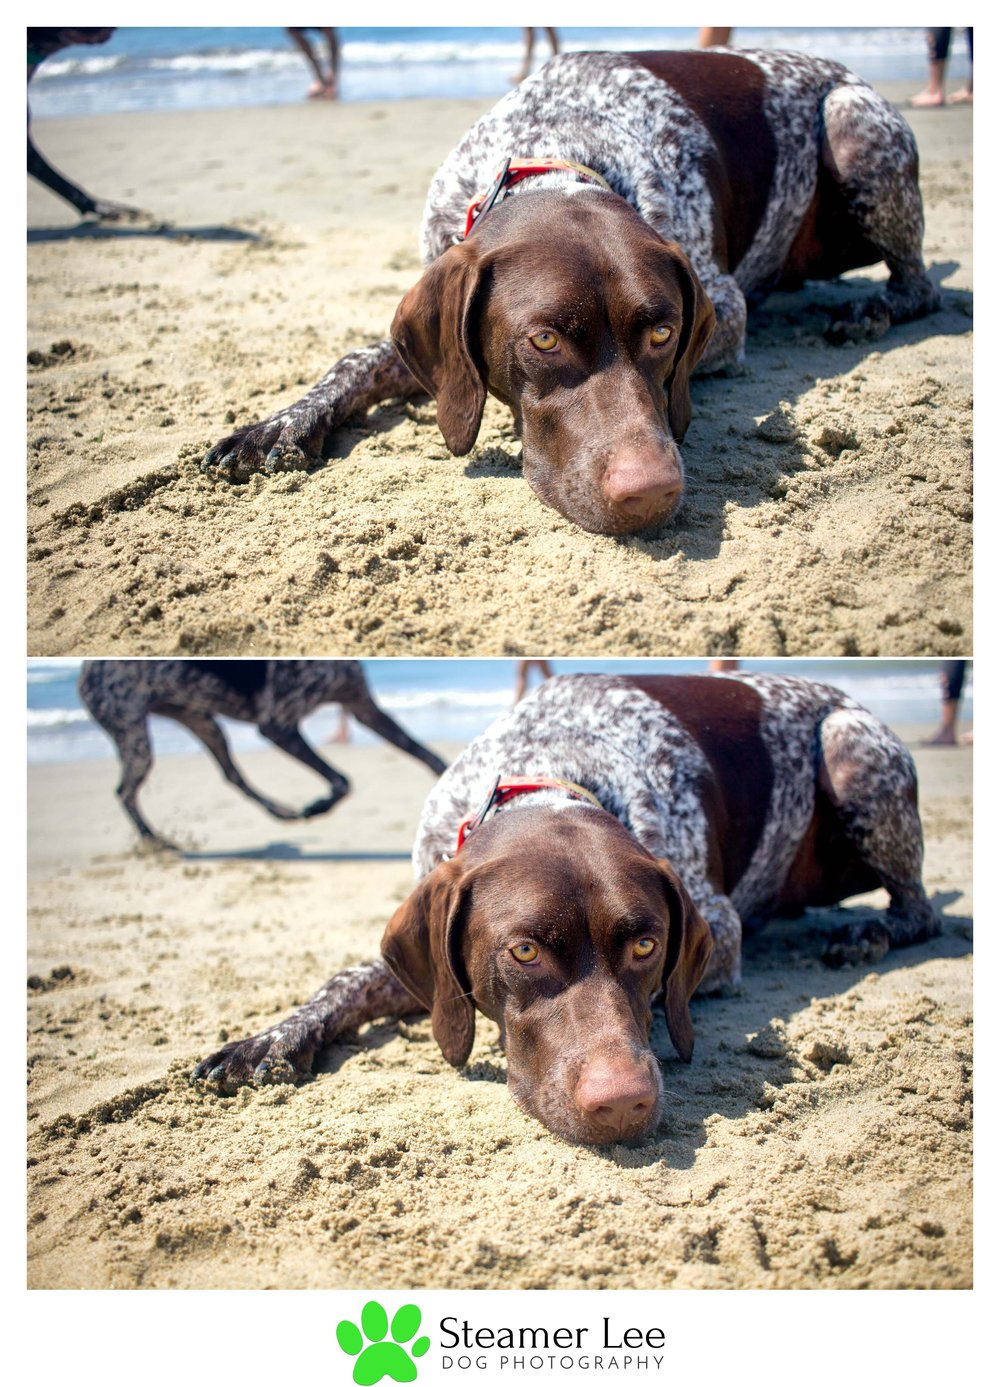 Steamer Lee Dog Photography - German Shorthaired Pointer Meetup - Huntington Beach Dog Beach - 00012.jpg